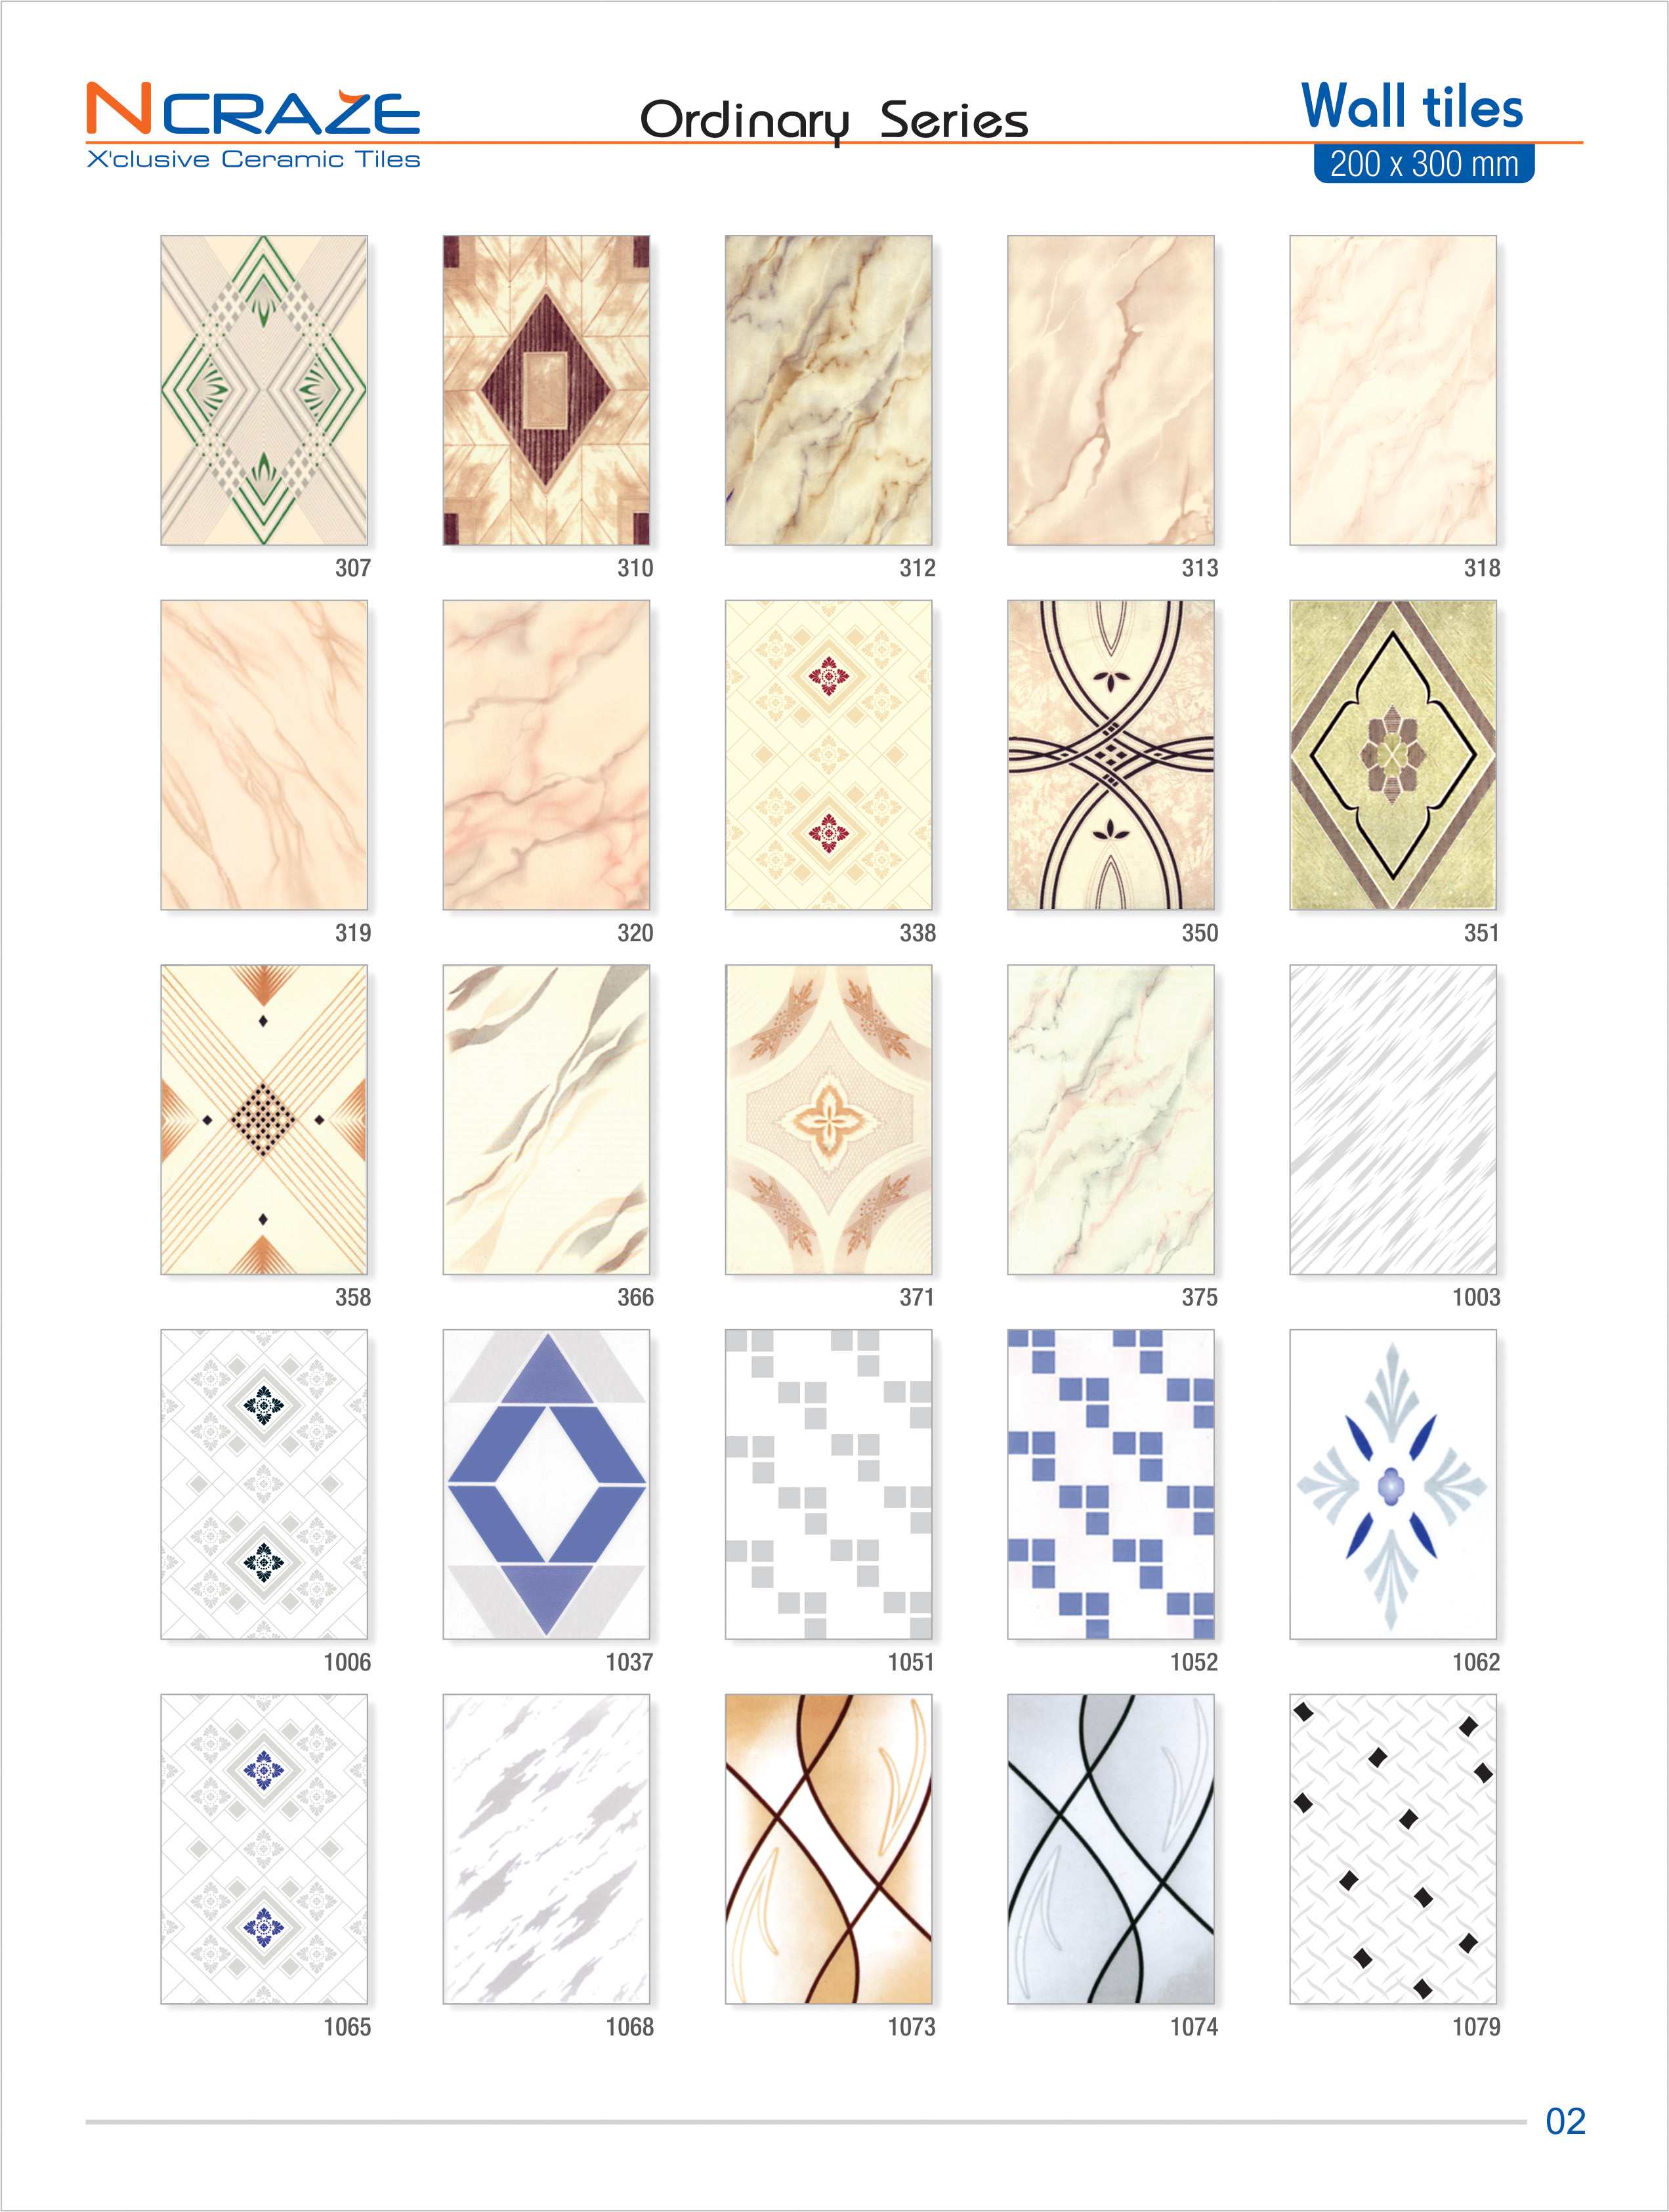 Low price cheapest wall tiles ncraze ceramic tiles india n02 dailygadgetfo Image collections